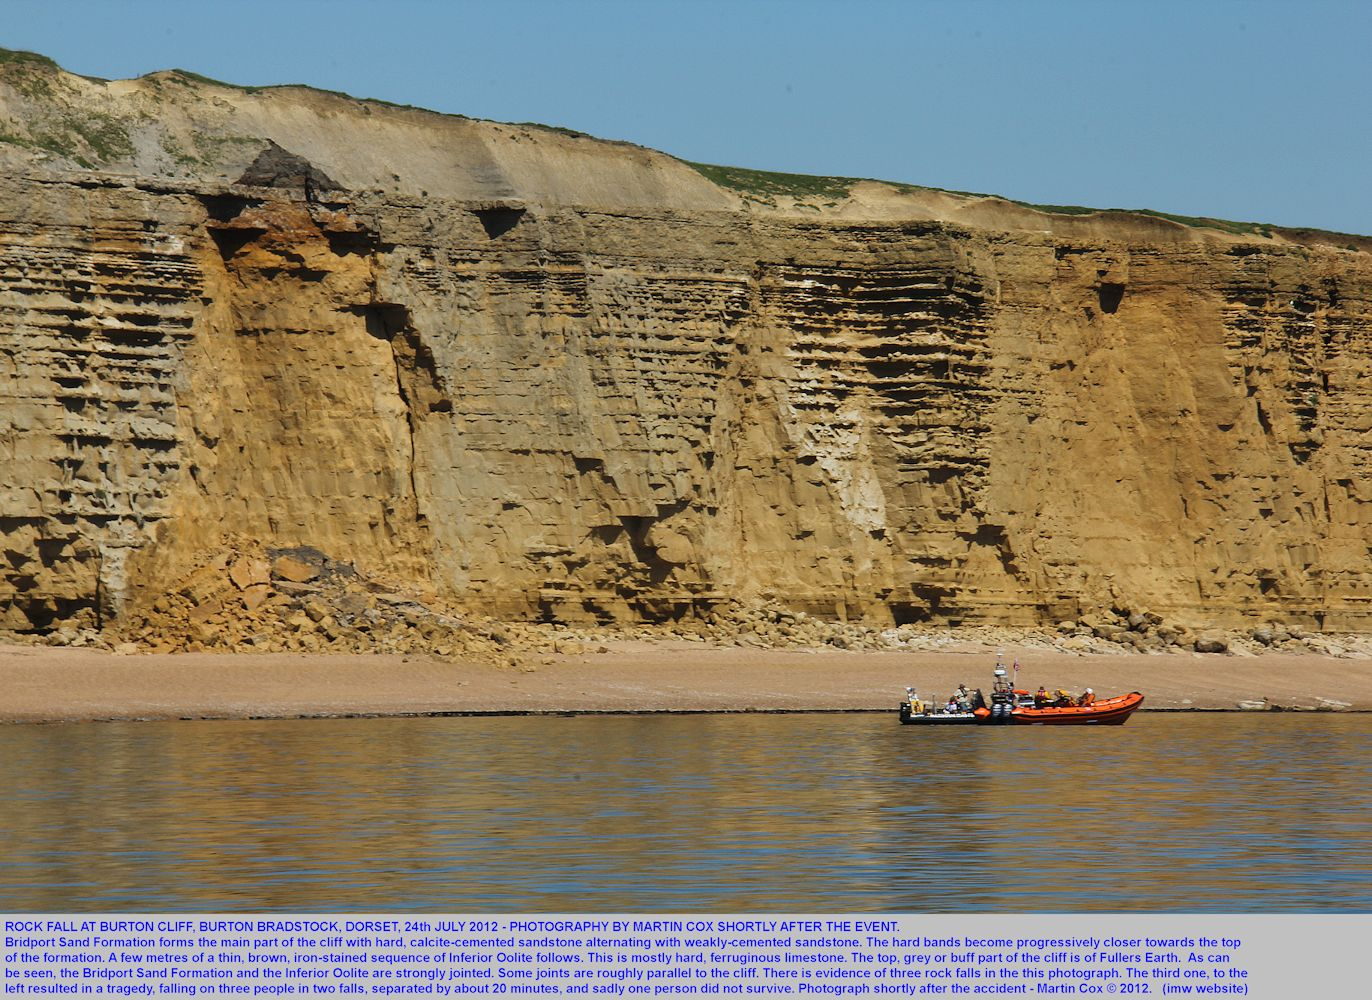 Rock fall of Bridport Sand Formation and Inferior Oolite etc at Burton Cliff, Burton Bradstock, Dorset, 24th July 2012, with a fatal accident, photographed from a boat by Martin Cox